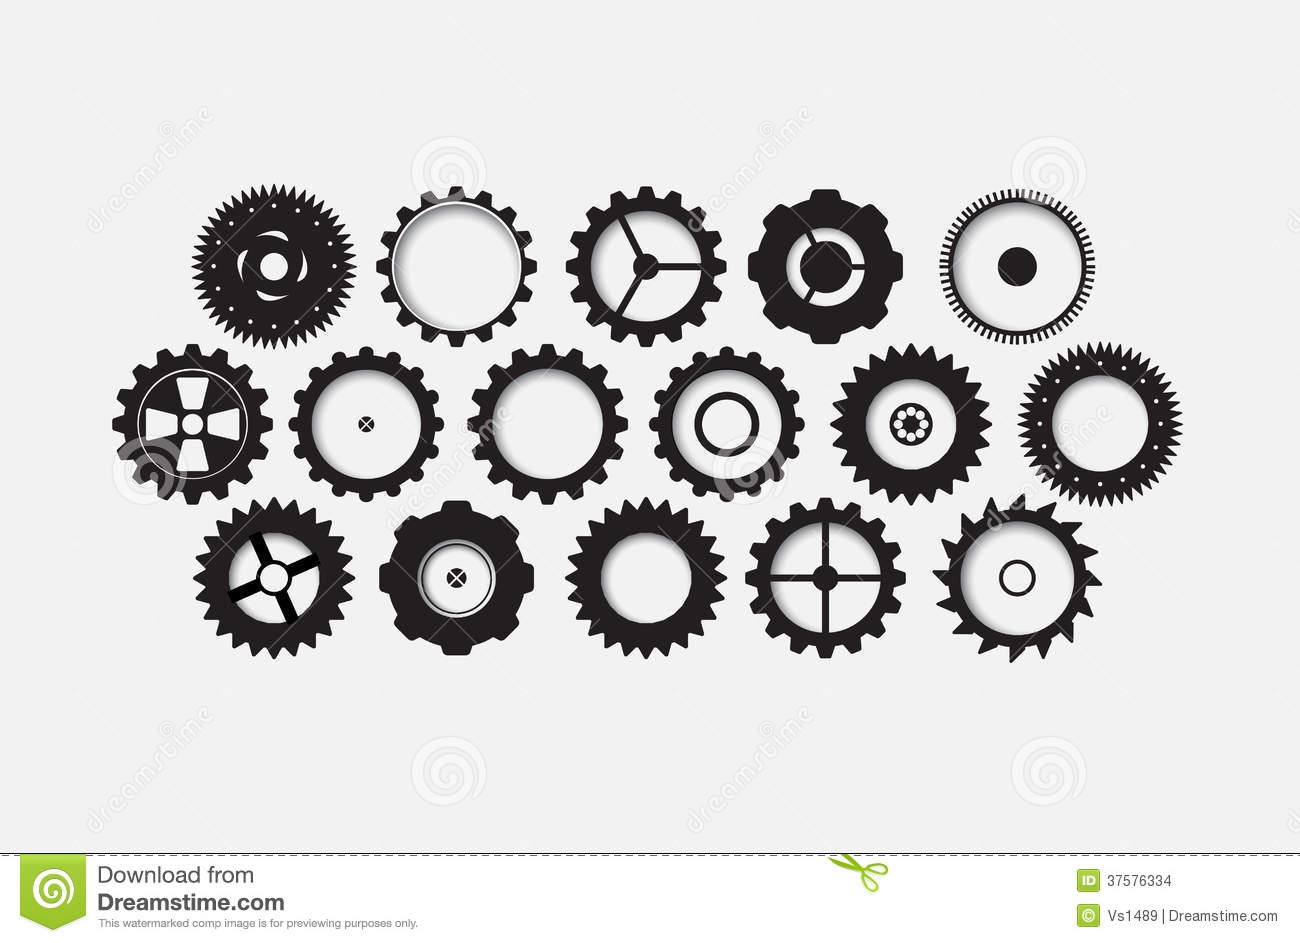 Arboles Para Colorear moreover Diy Geef Je Laptop  puter Of Tablet Een Kleine Make Over also Stock Images Machine Technology Gears Retro Gearwheel Mechanism Bacground Image37576334 also Clipart Arm Black And White Clipart Arm Black And White Clip Art Cartoon Arms Clipart Clipart Kid 387 X 470 also Snowflake  puting hixokyO4xs9t19T1ygFIlCvh2 KBSxslO 7Cz9BPMPAUo. on wallpaper for computer background